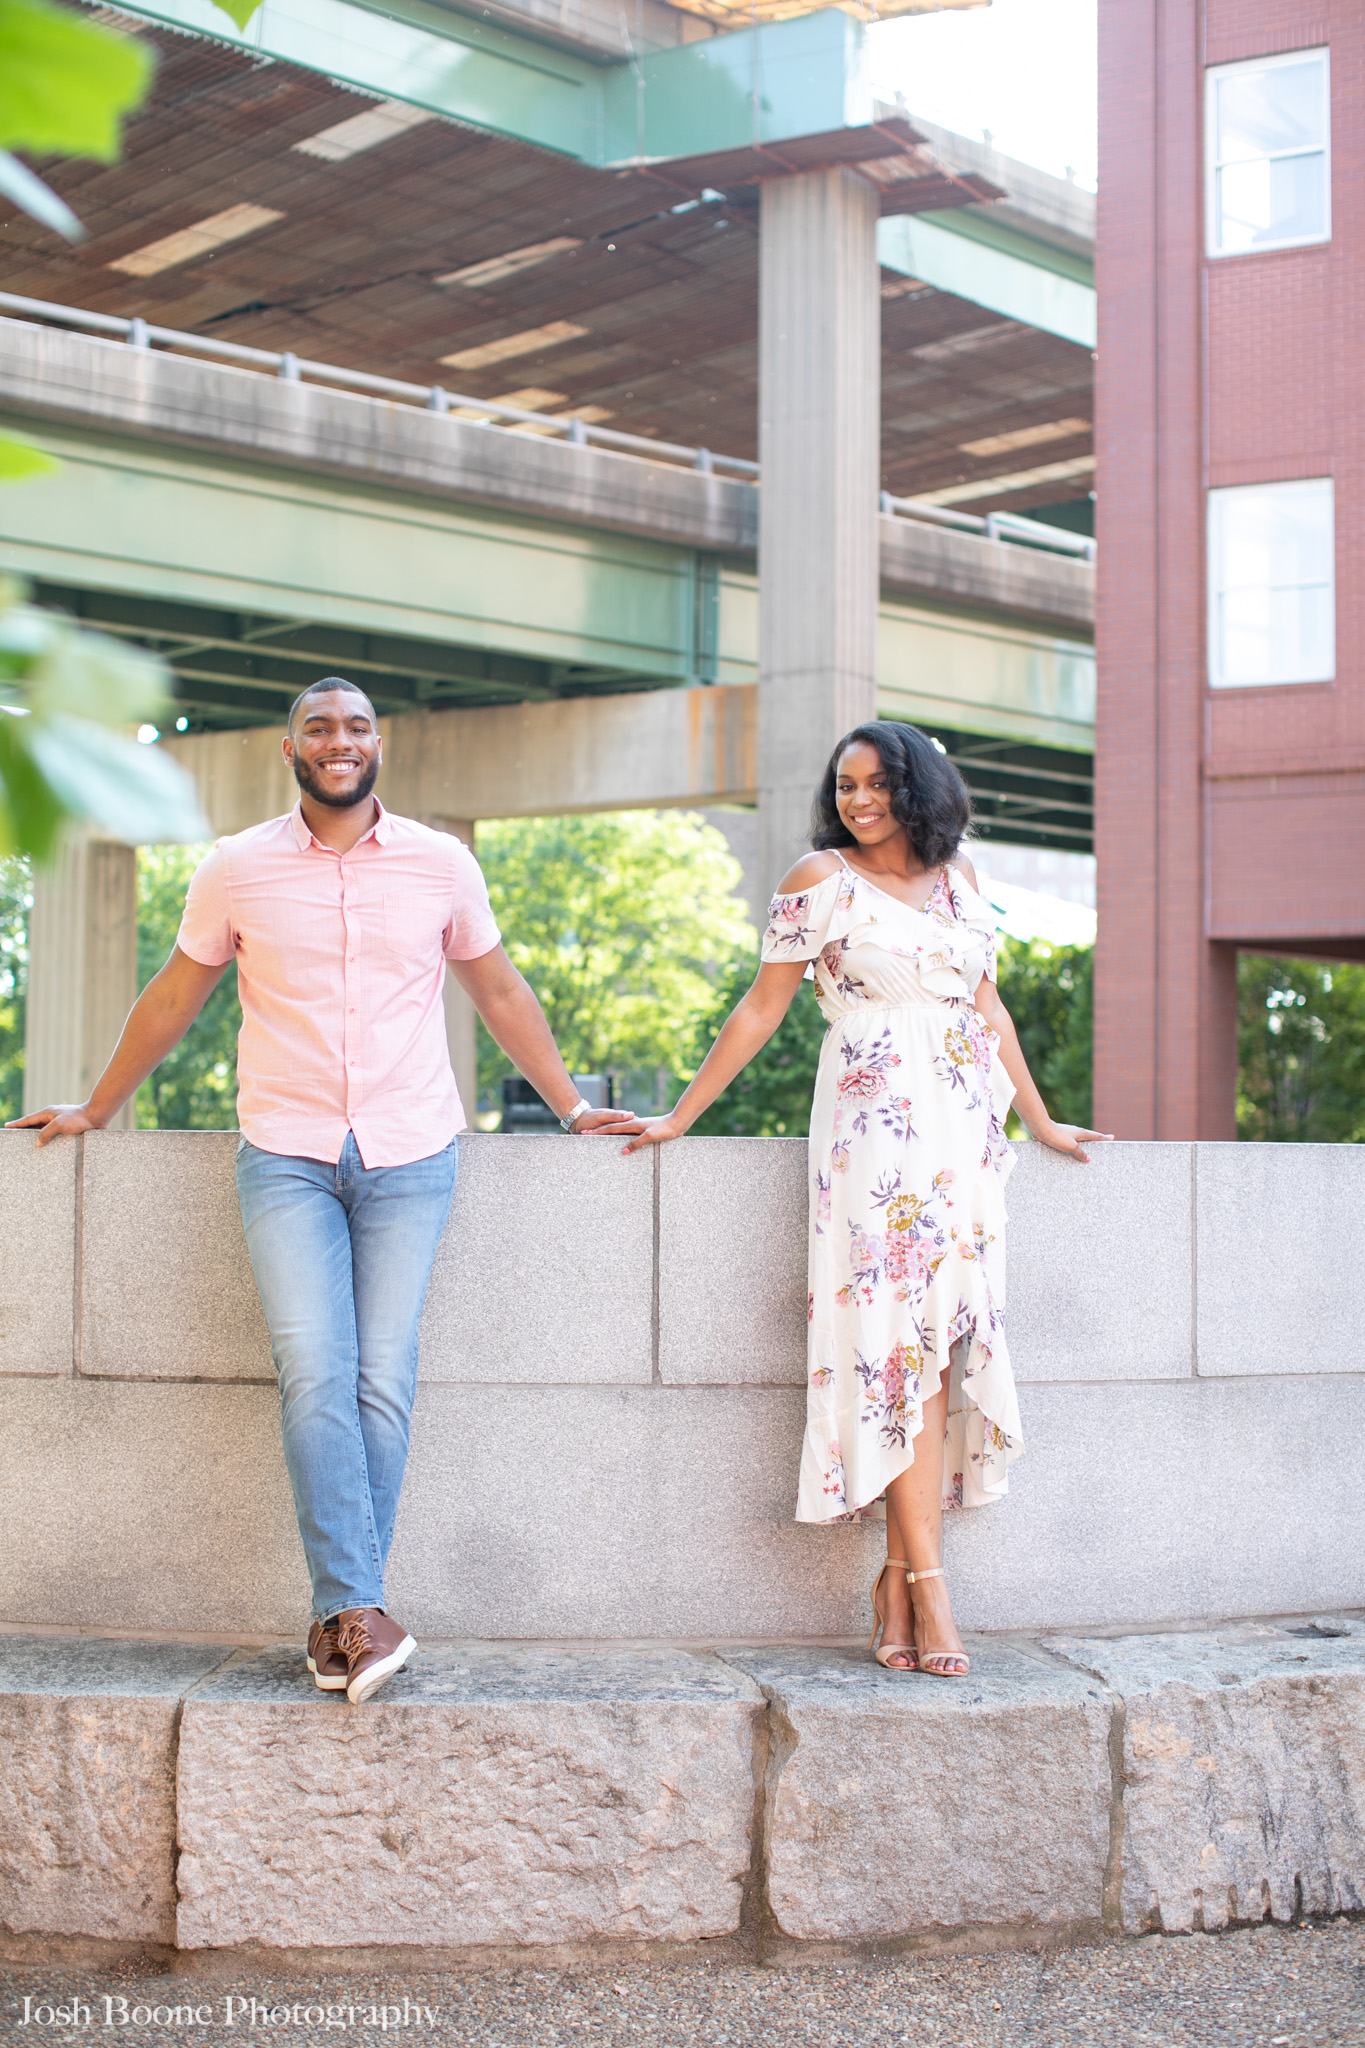 canal_walk_engagement_photos-3.jpg